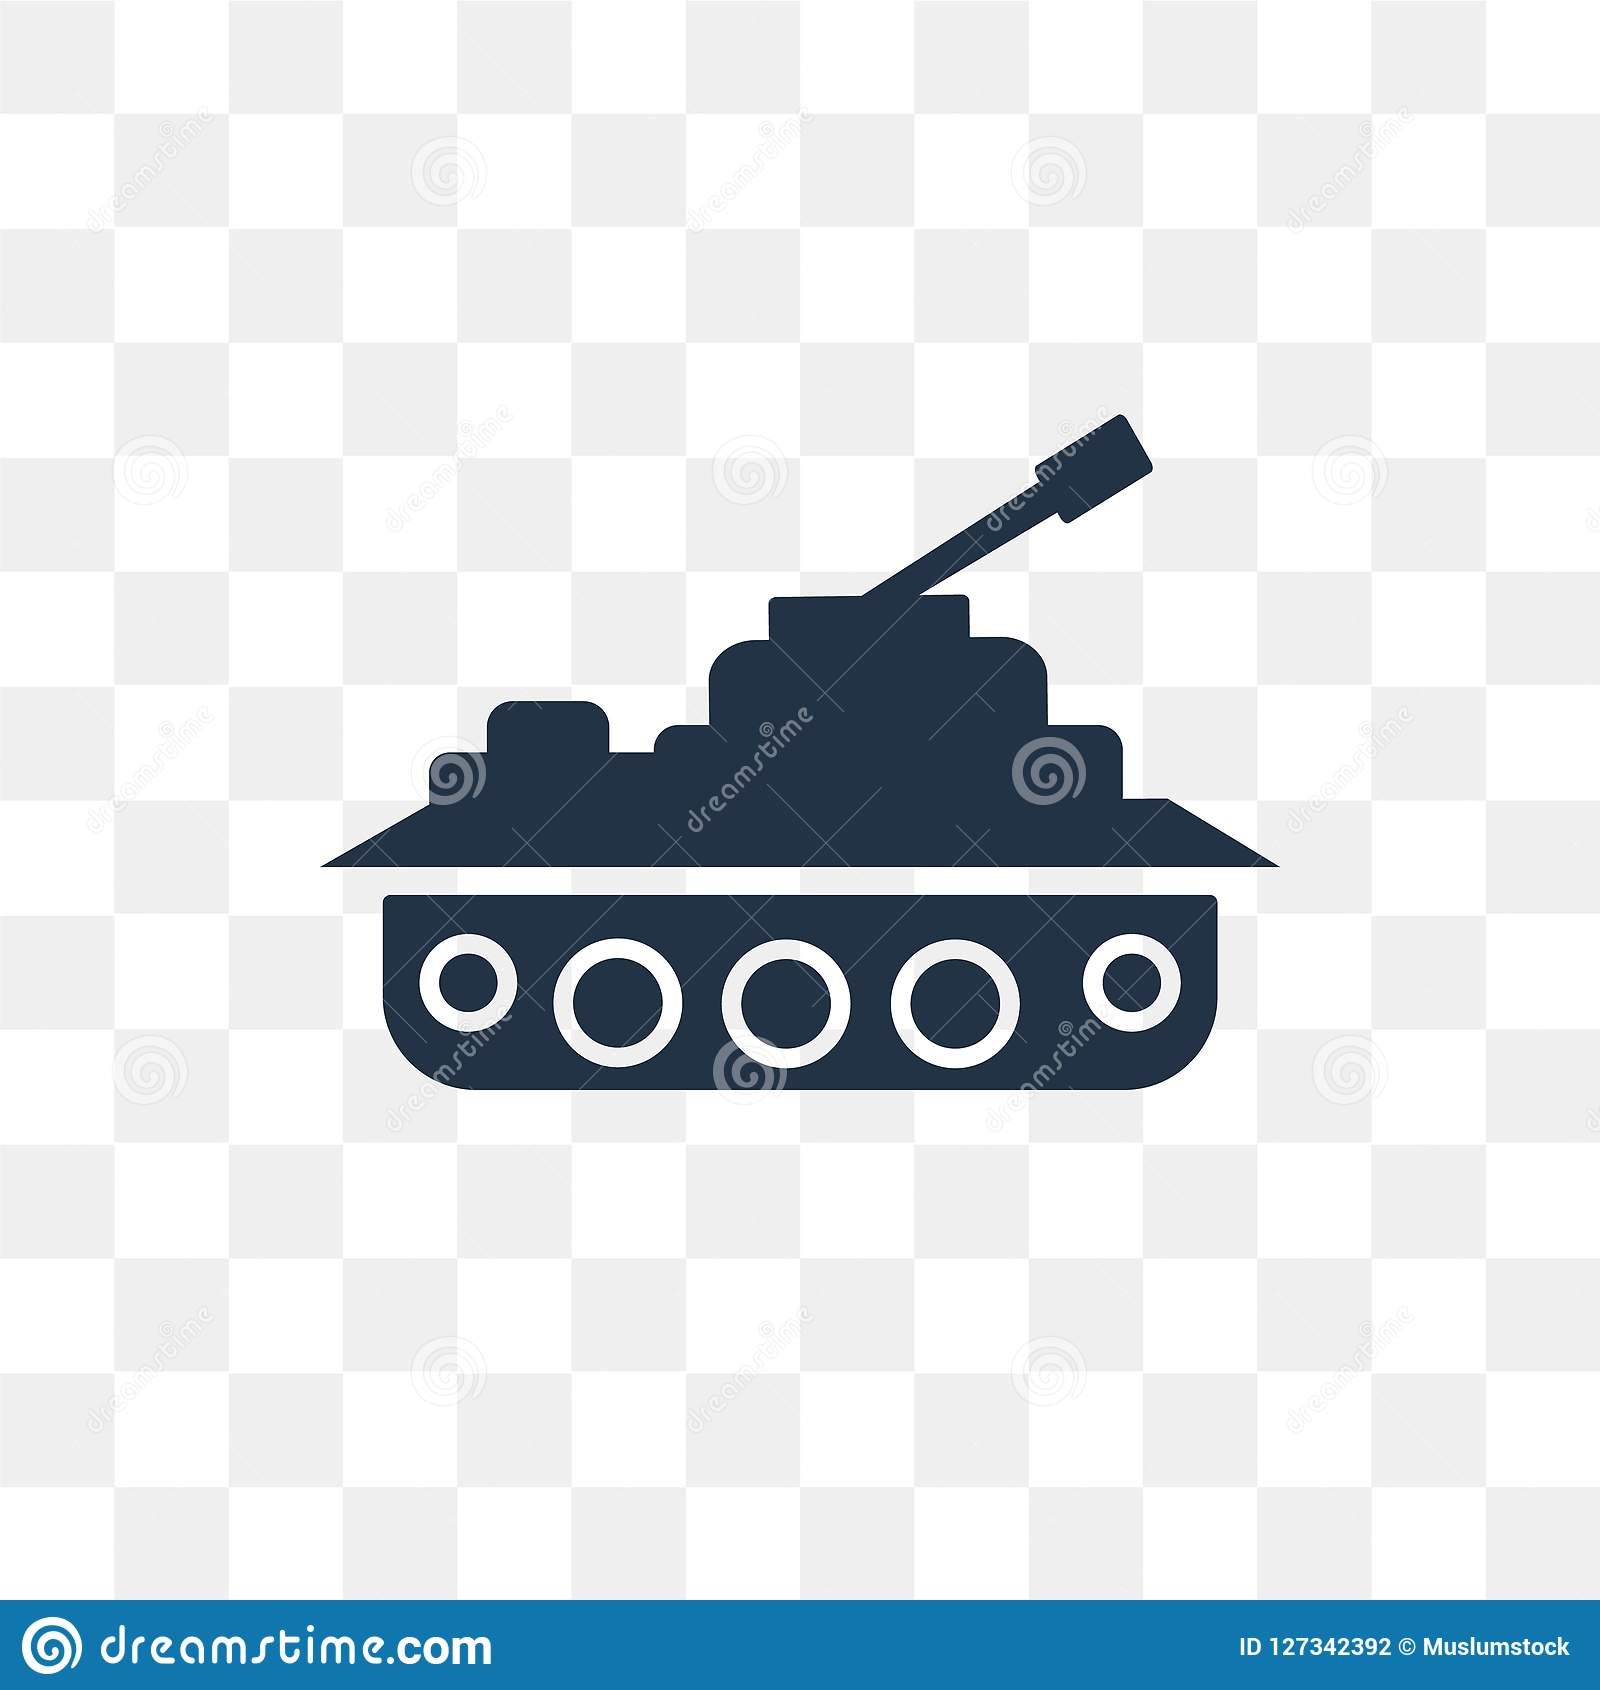 tank vector icon isolated on transparent background tank trans stock vector illustration of plant fuel 127342392 https www dreamstime com tank vector icon isolated transparent background trans transparency concept can be used web mobile image127342392